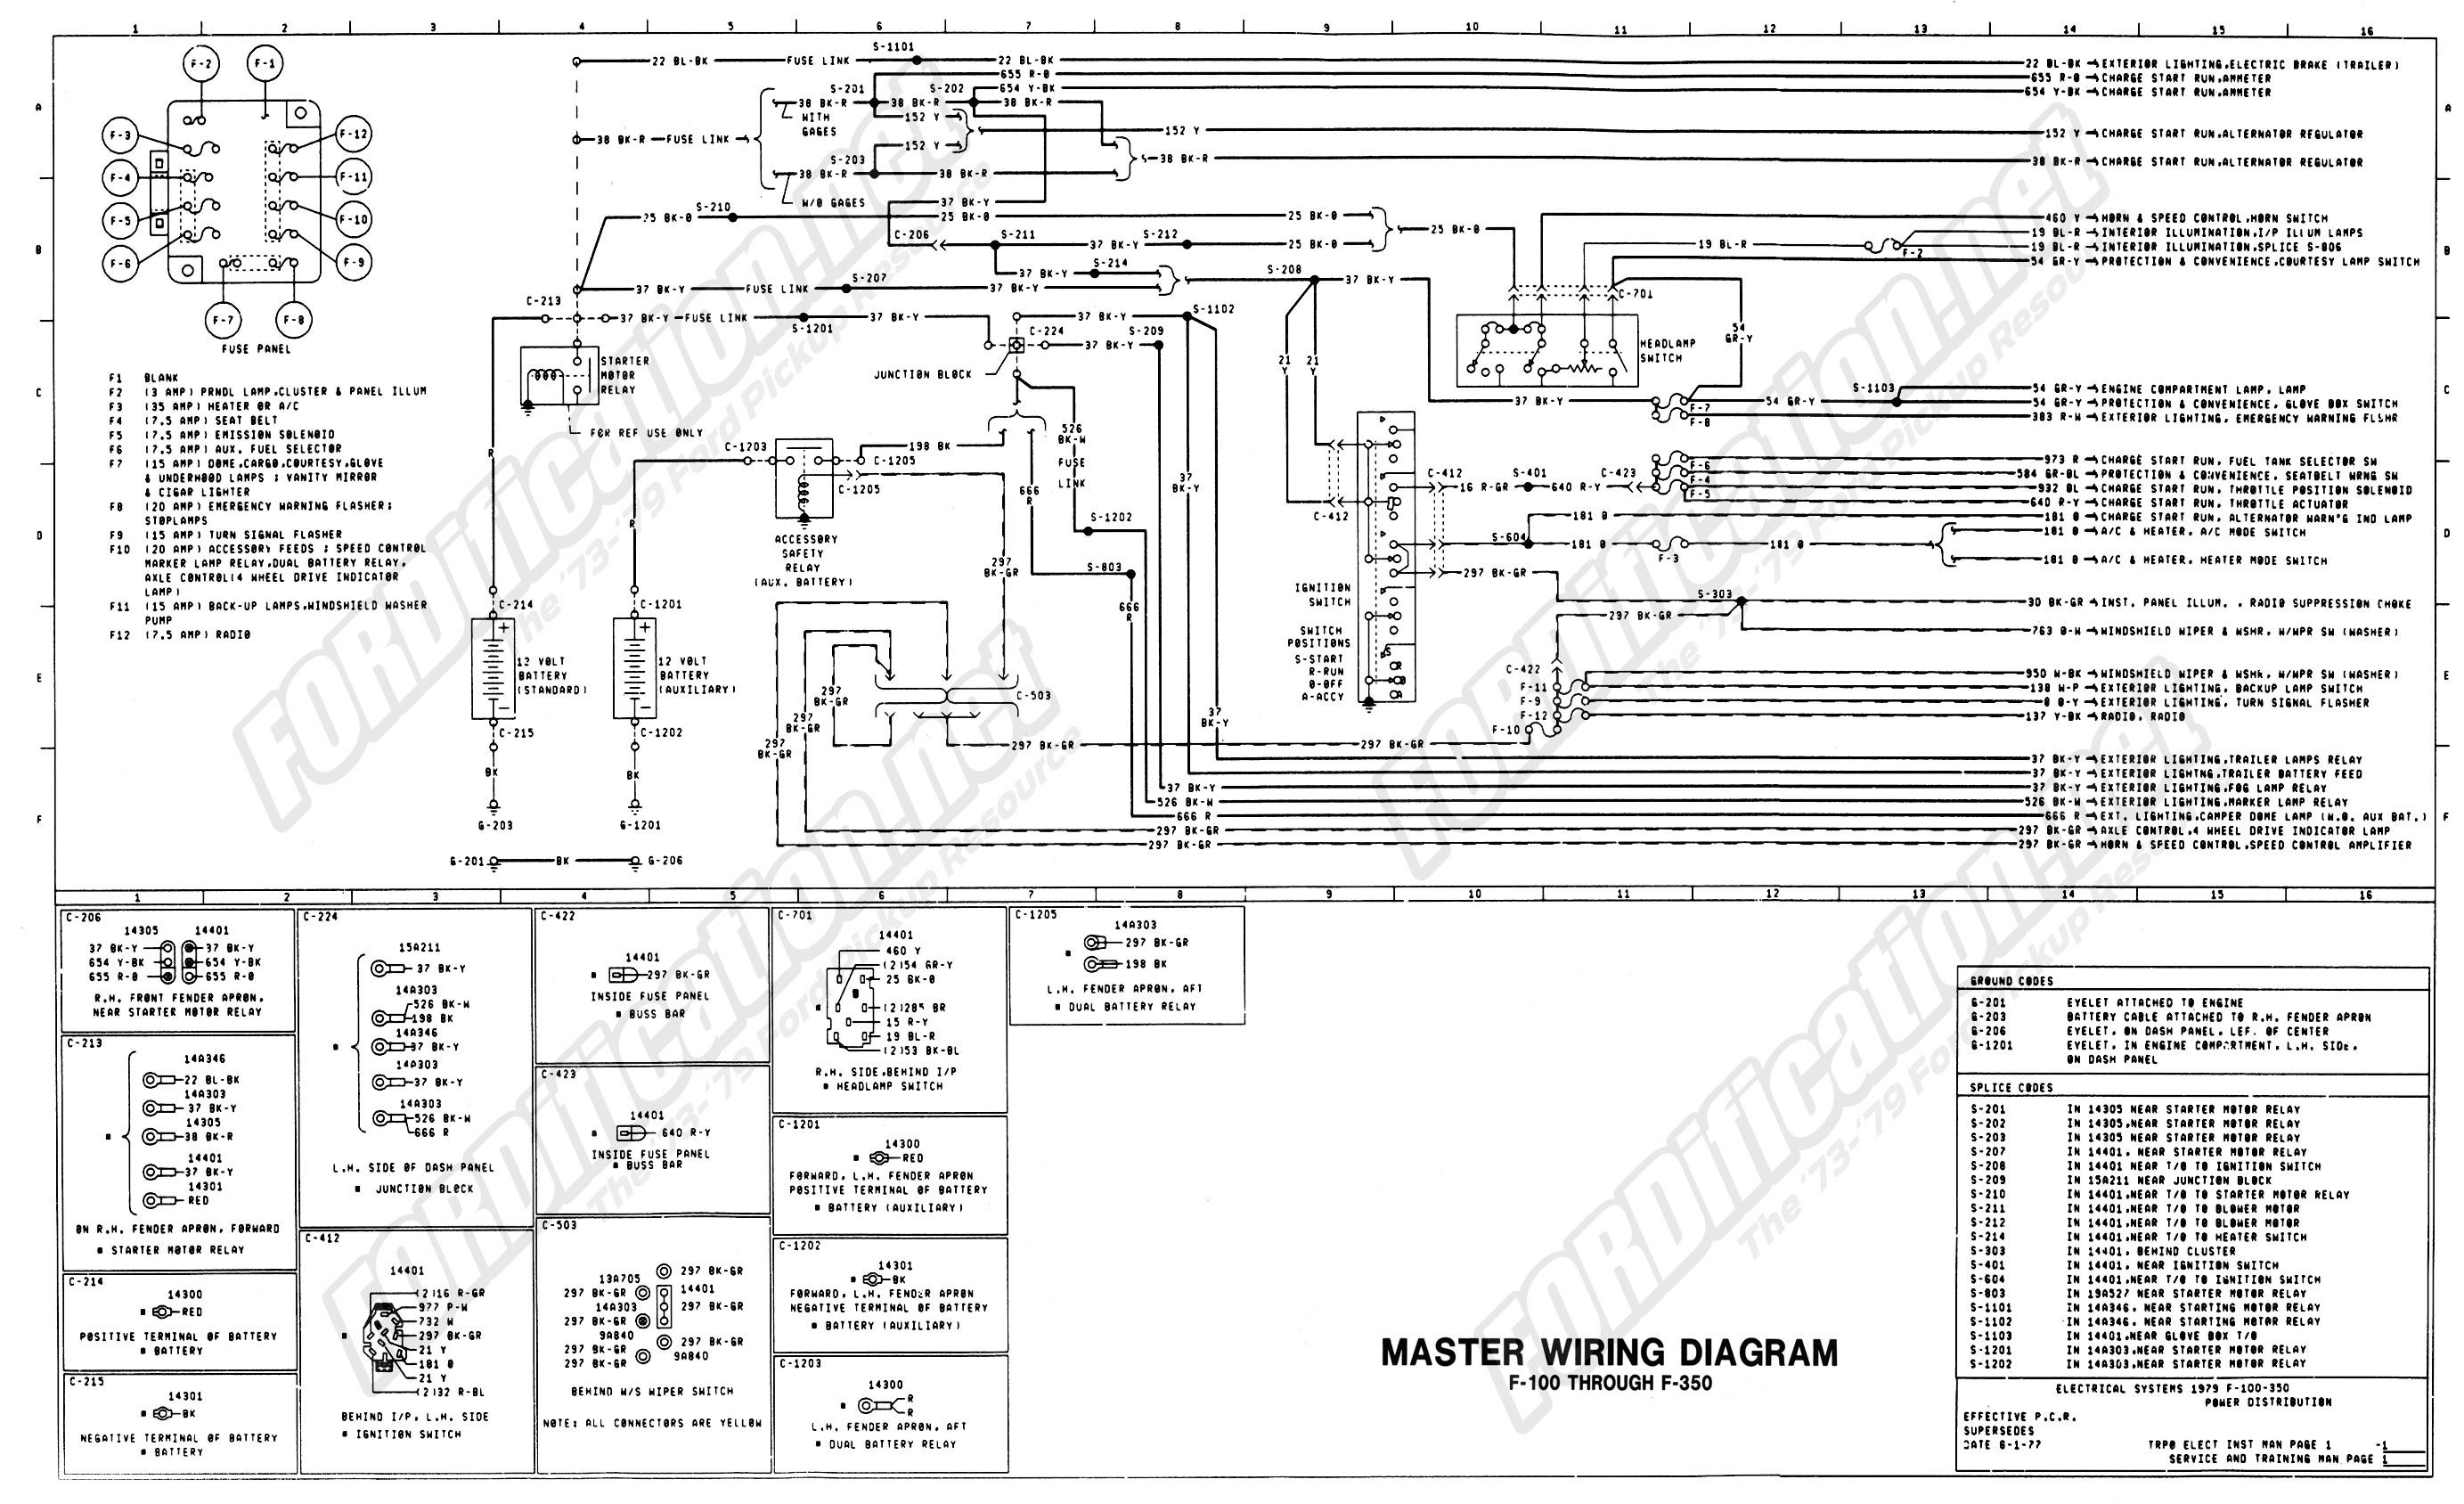 Free Wiring Diagrams For Dodge Trucks Reference Mack Truck Fuse Box Diagram  Awesome 1969 Ford F